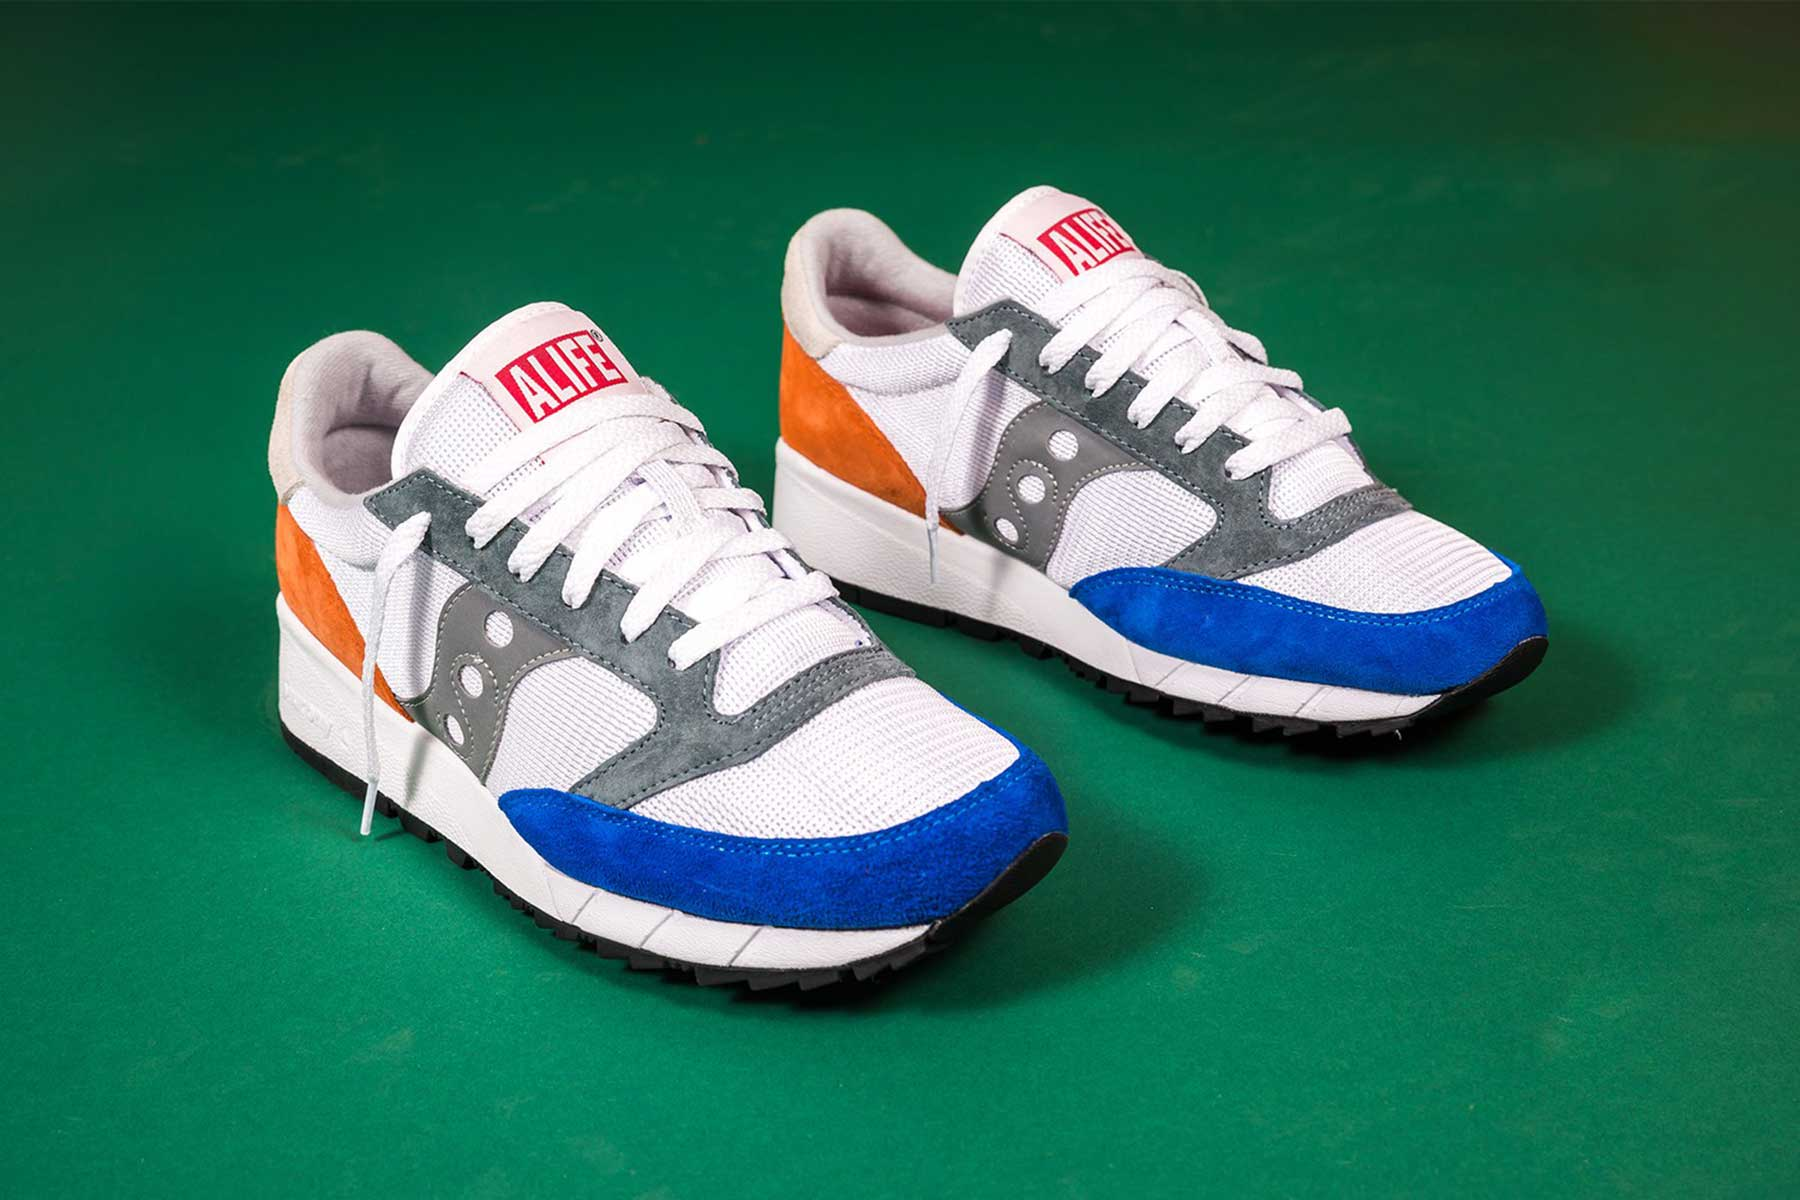 ALIFE has partnered with Saucony to release updated designs on the Jazz '91. The streetwear brand and Saucony have linked up to present the Jazz '91 model.